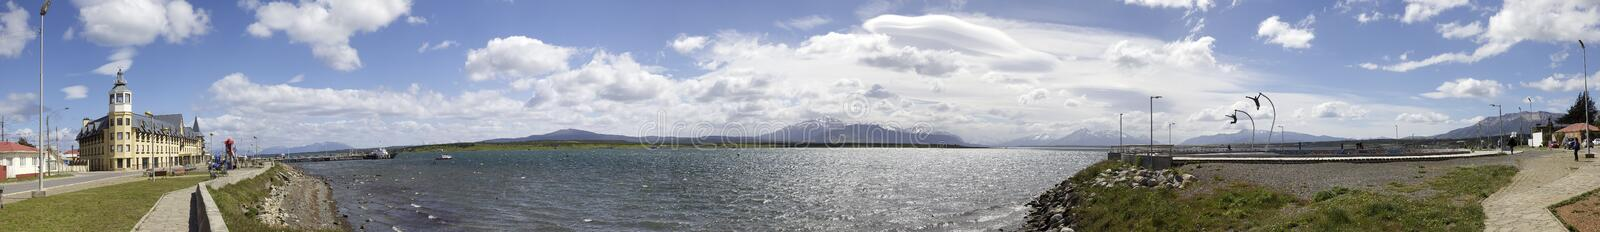 Puerto Natale view with a Homage to the Wind monument in Patagonia, Chile royalty free stock photos